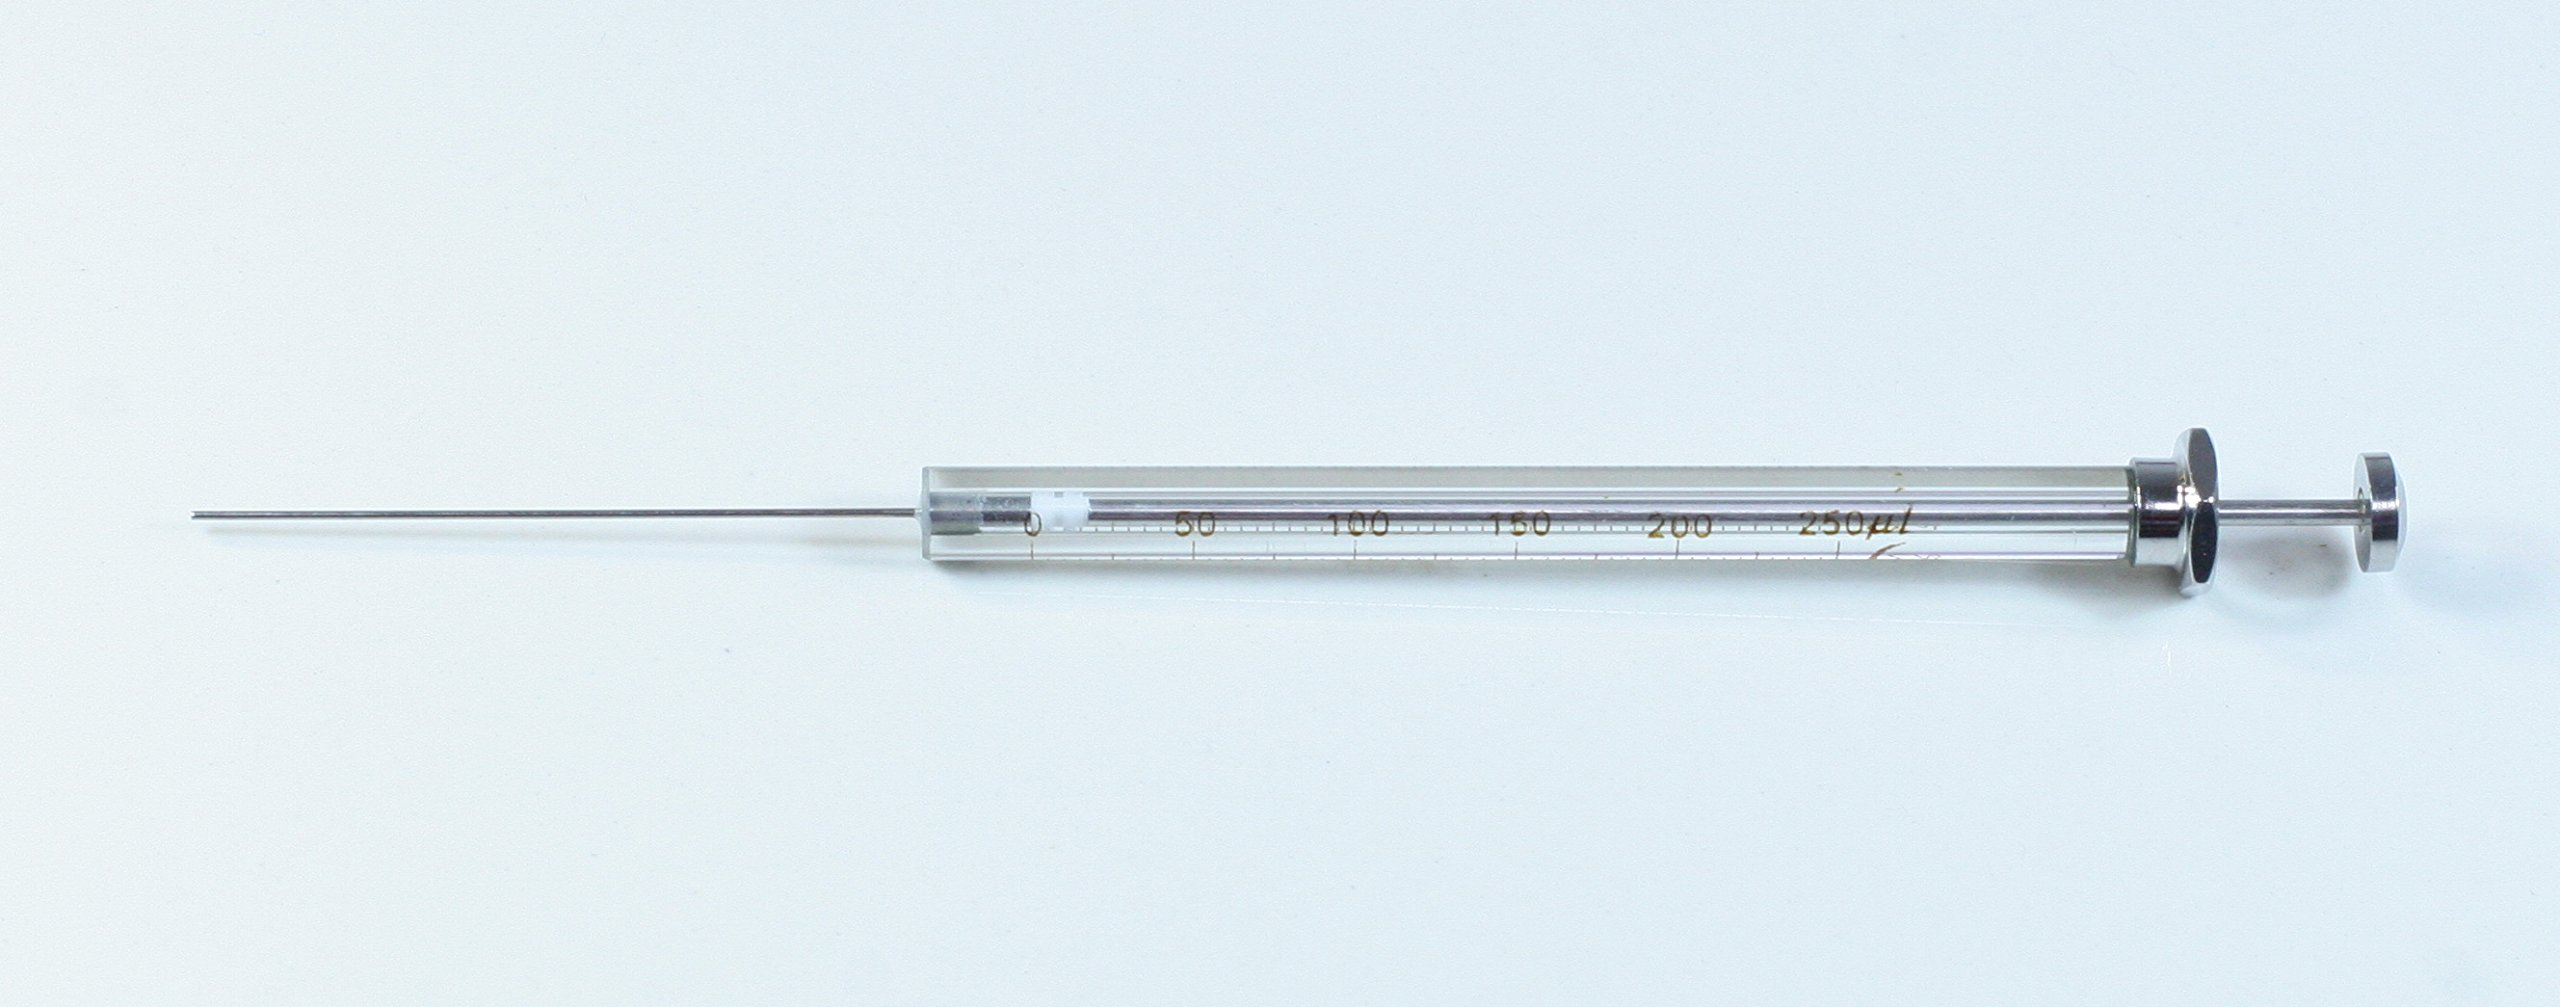 Chromatography Gastight Microliter Syringe, 250 μL, Blunt Tip, Gc, Hplc by Science Outlet